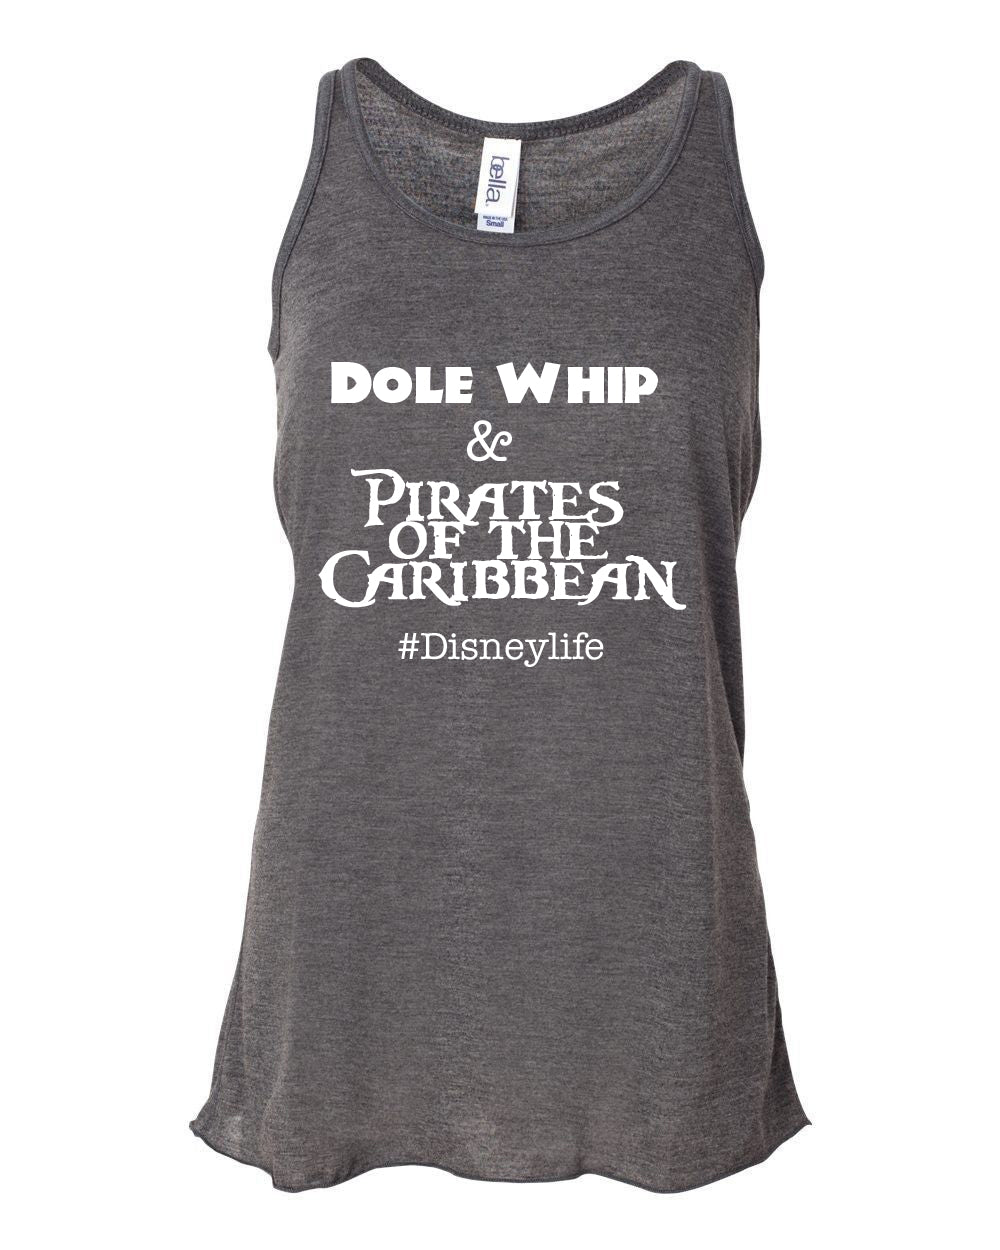 Dole Whip & Pirates of the Caribbean Racerback Tank